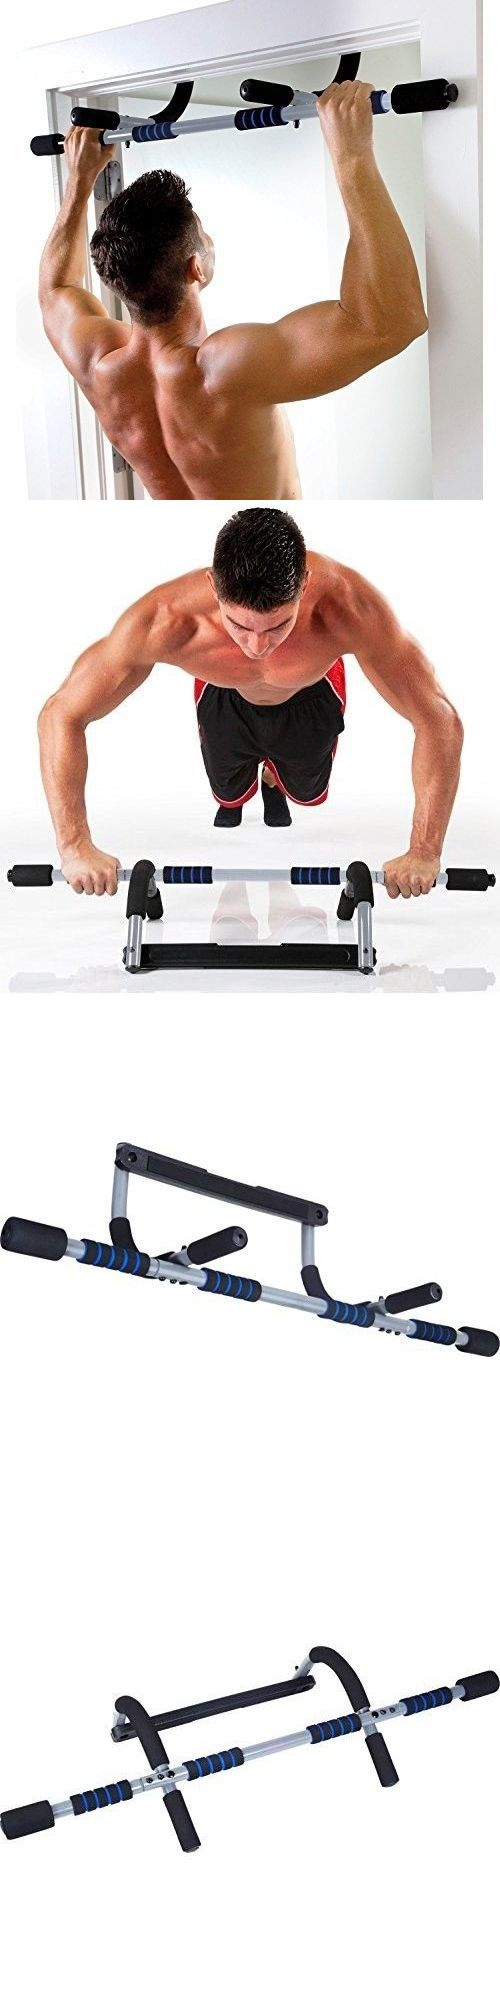 Abdominal straps crunch weight lifting door hanging gym chinning - Pull Up Bars 179816 Doorway Pull Up Bar Chinup Fitness Weight Training Workout Upper Body